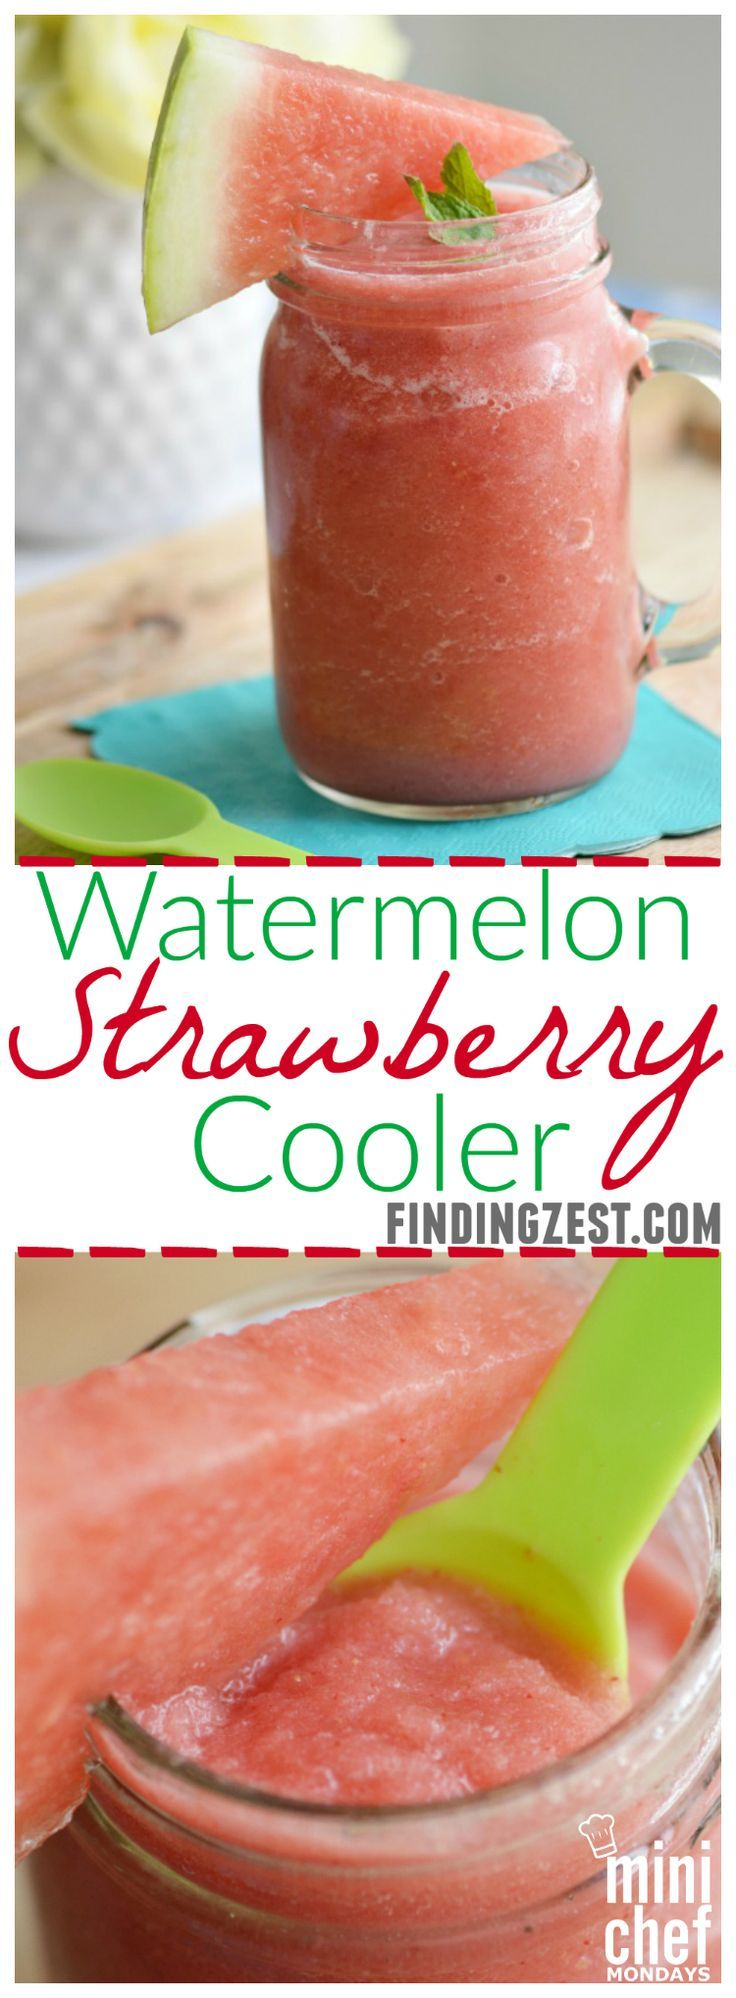 Watermelon Strawberry Cooler: Give this refreshing summer blender drink a try to cool off!